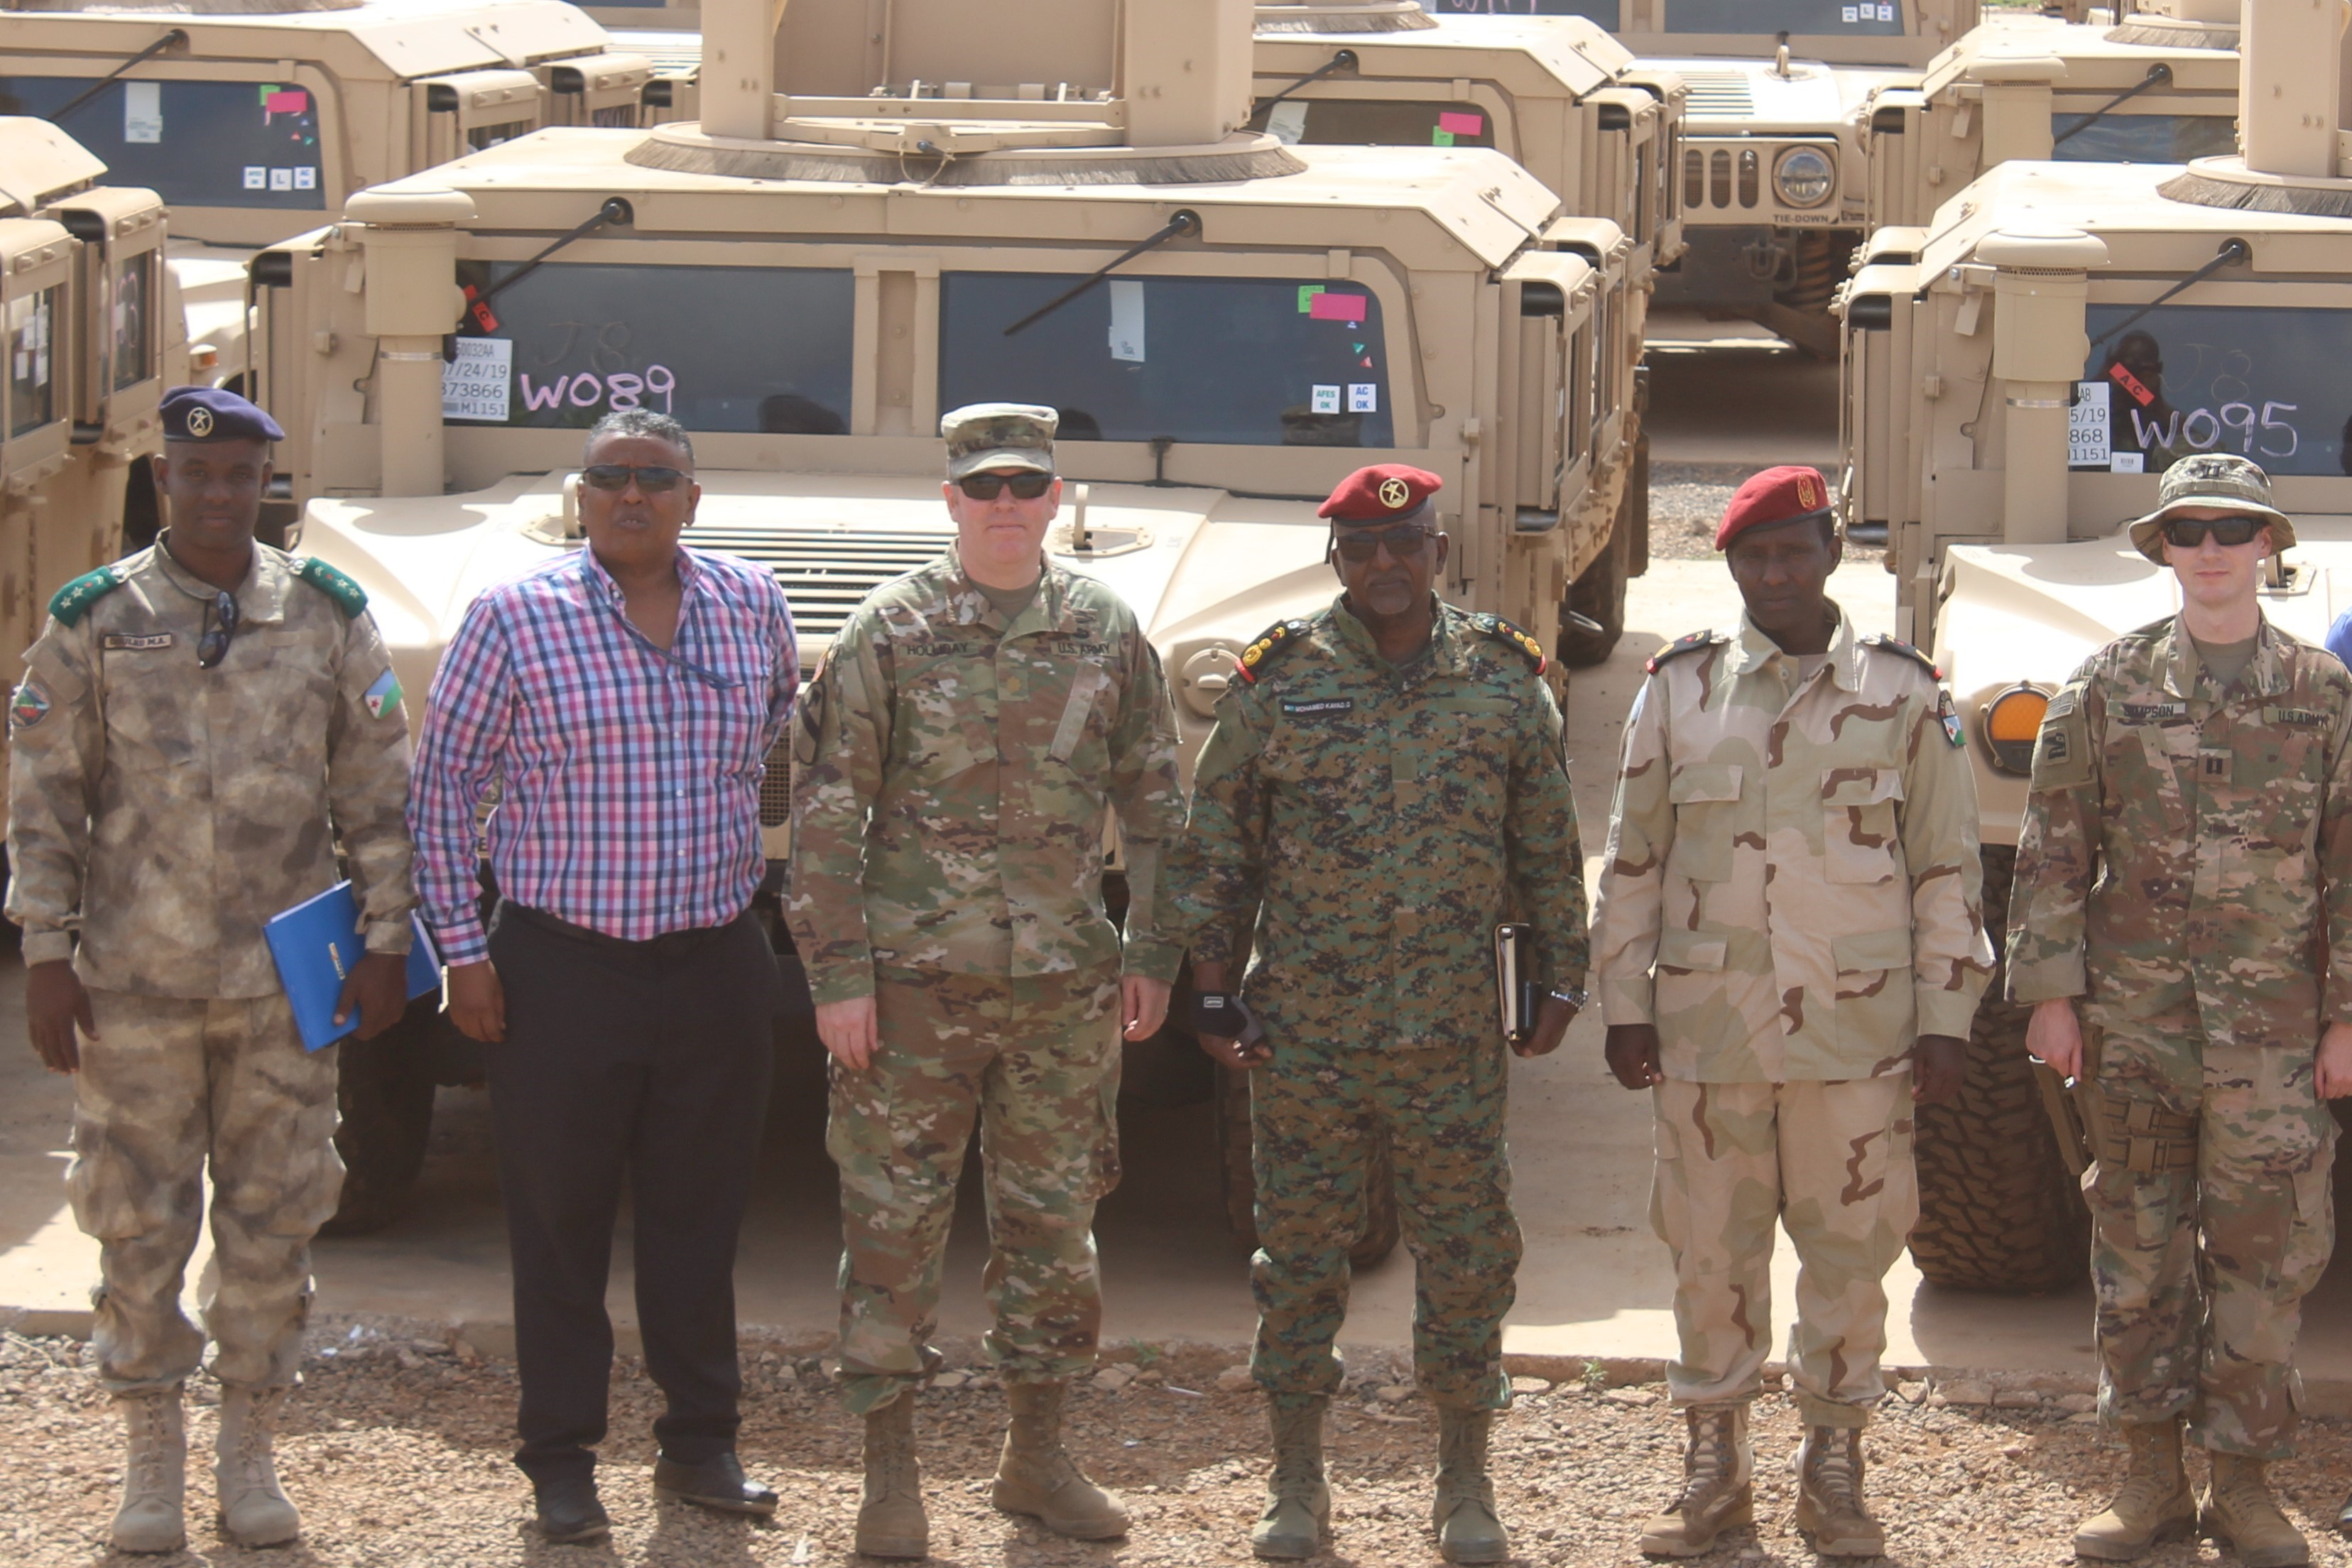 The U.S. delivered 54 Humvees to the RIB as part of a $31 million train-and-equip partnership between the U.S. government and the Djiboutian military. (U.S. Air Force Photo by Senior Airman Codie Trimble)